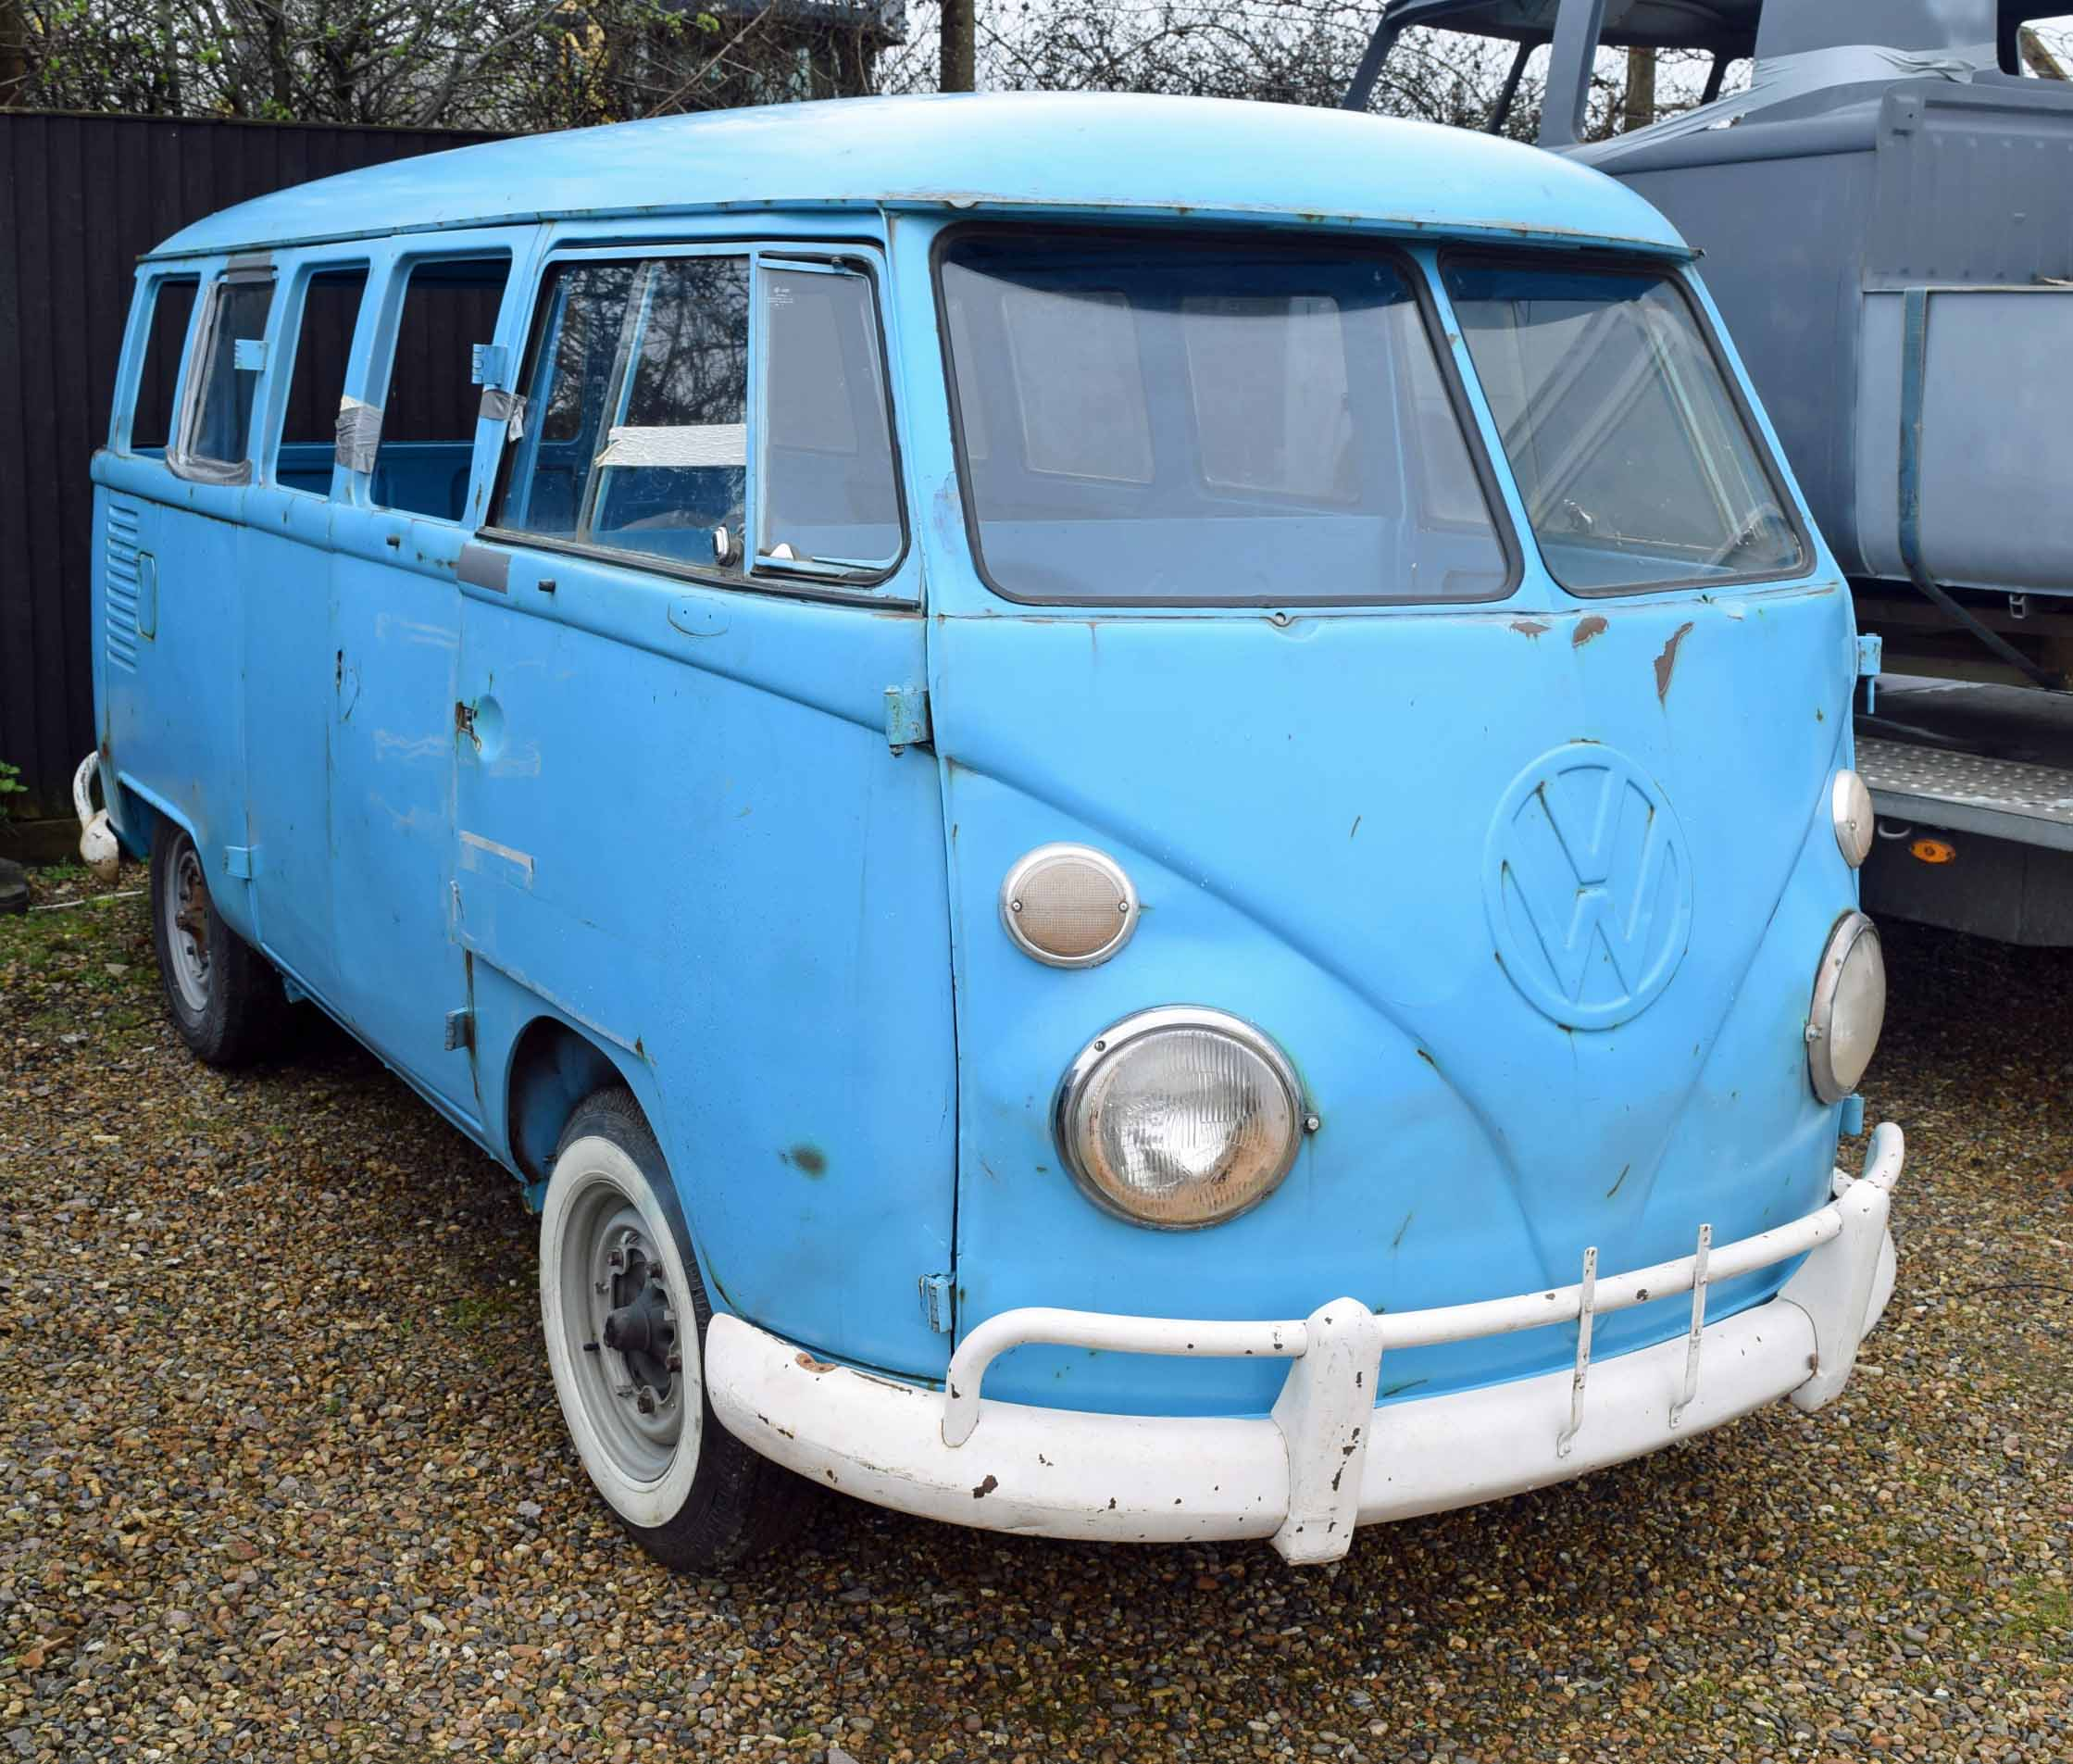 Lot 34 - 1975 VOLKSWAGEN Kombi Split Screen Van Rolling Chassis (Brazilian Import), Registration No. Not